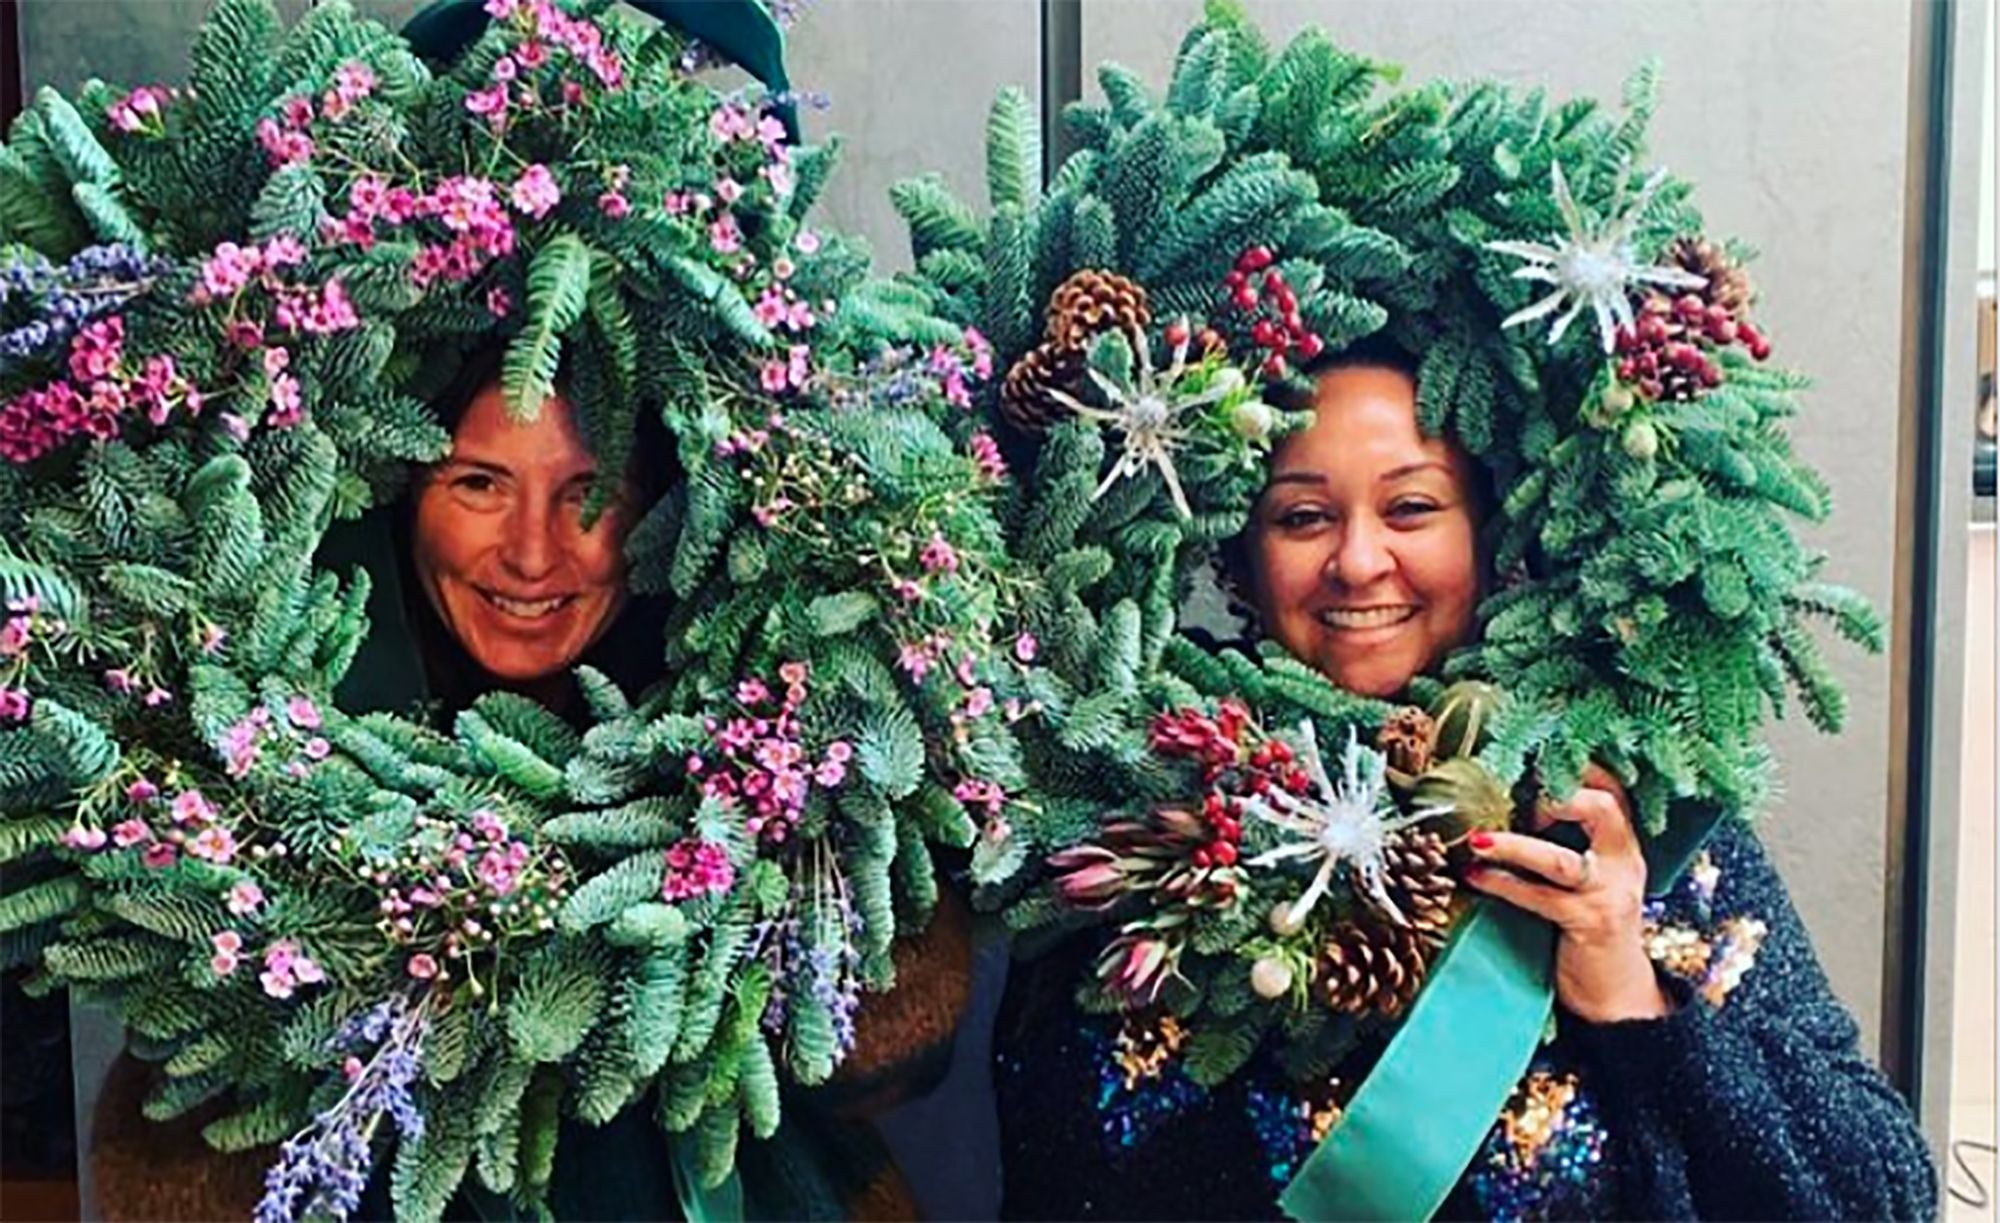 Jools Oliver shows off her impressive handmade Christmas wreath